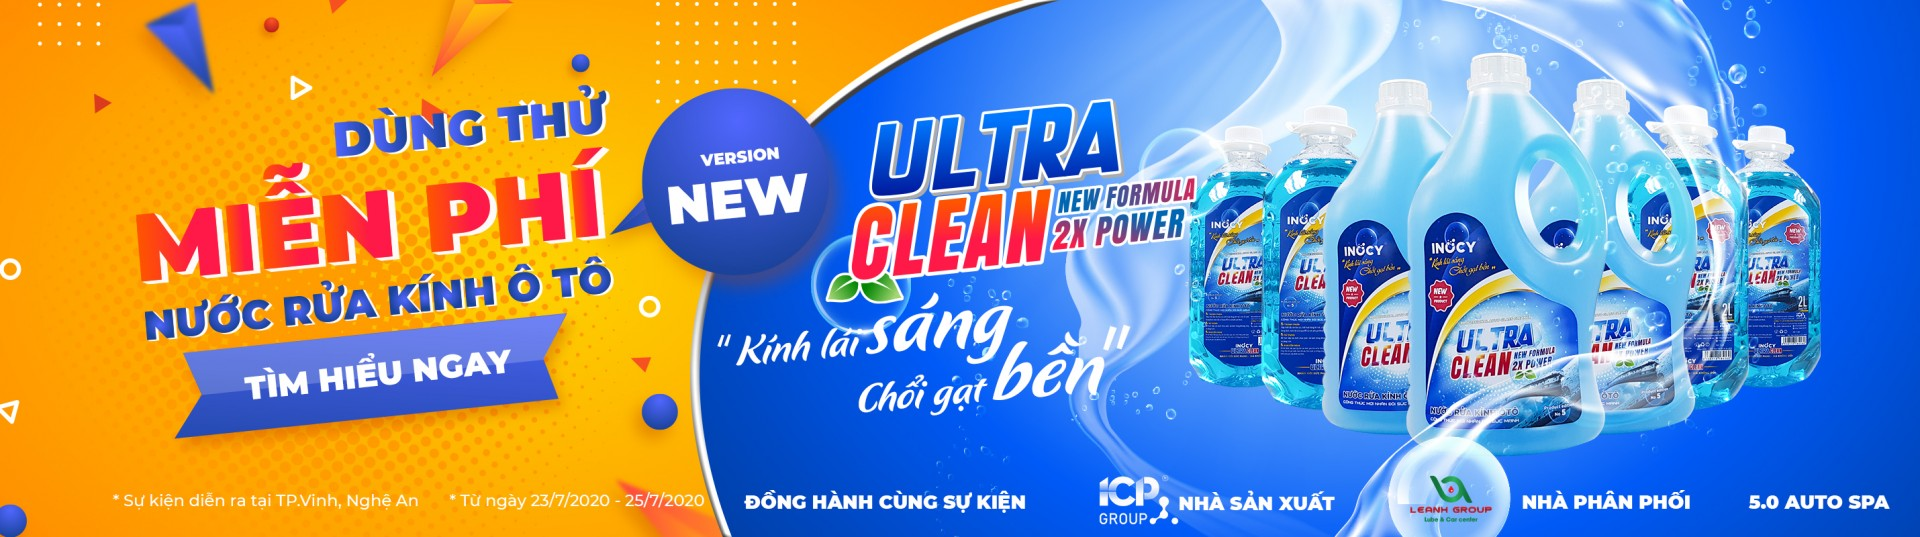 Inocy Ultra Clean Free Trial